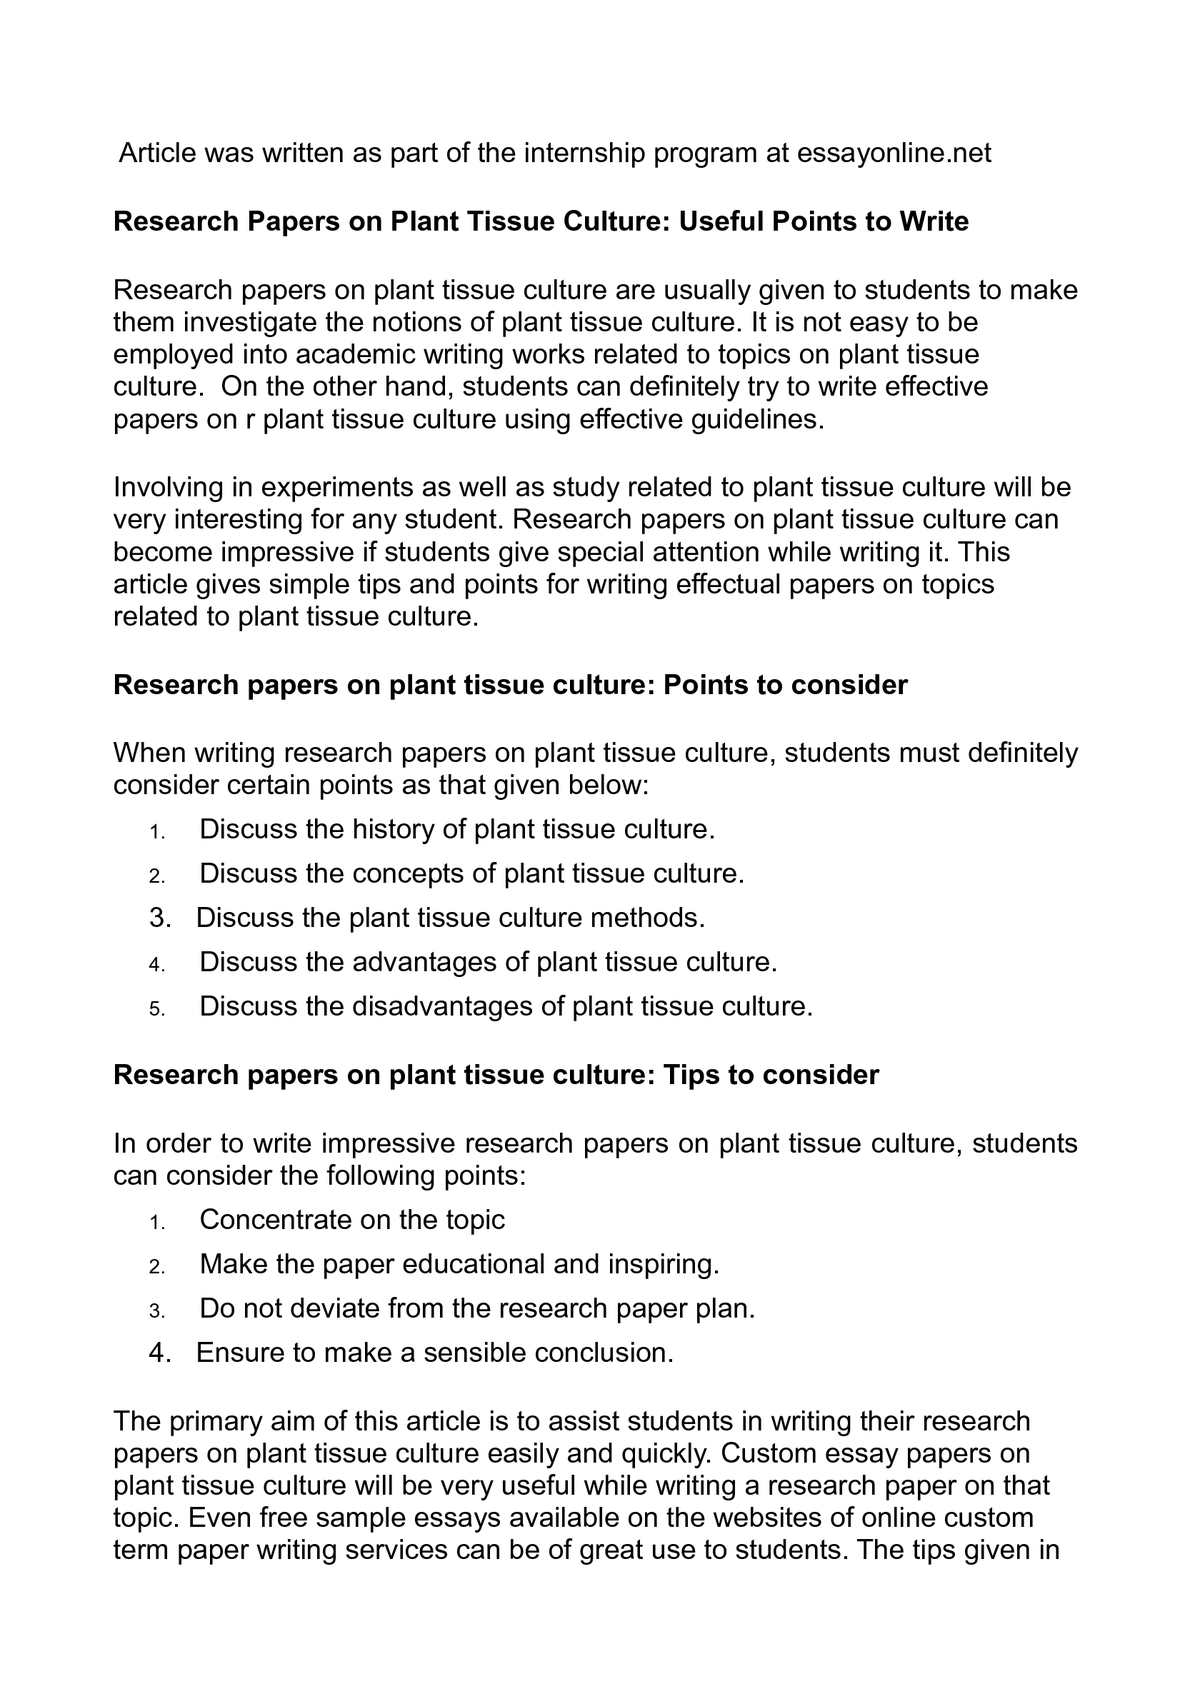 calam eacute o research papers on plant tissue culture useful points calameacuteo research papers on plant tissue culture useful points to write